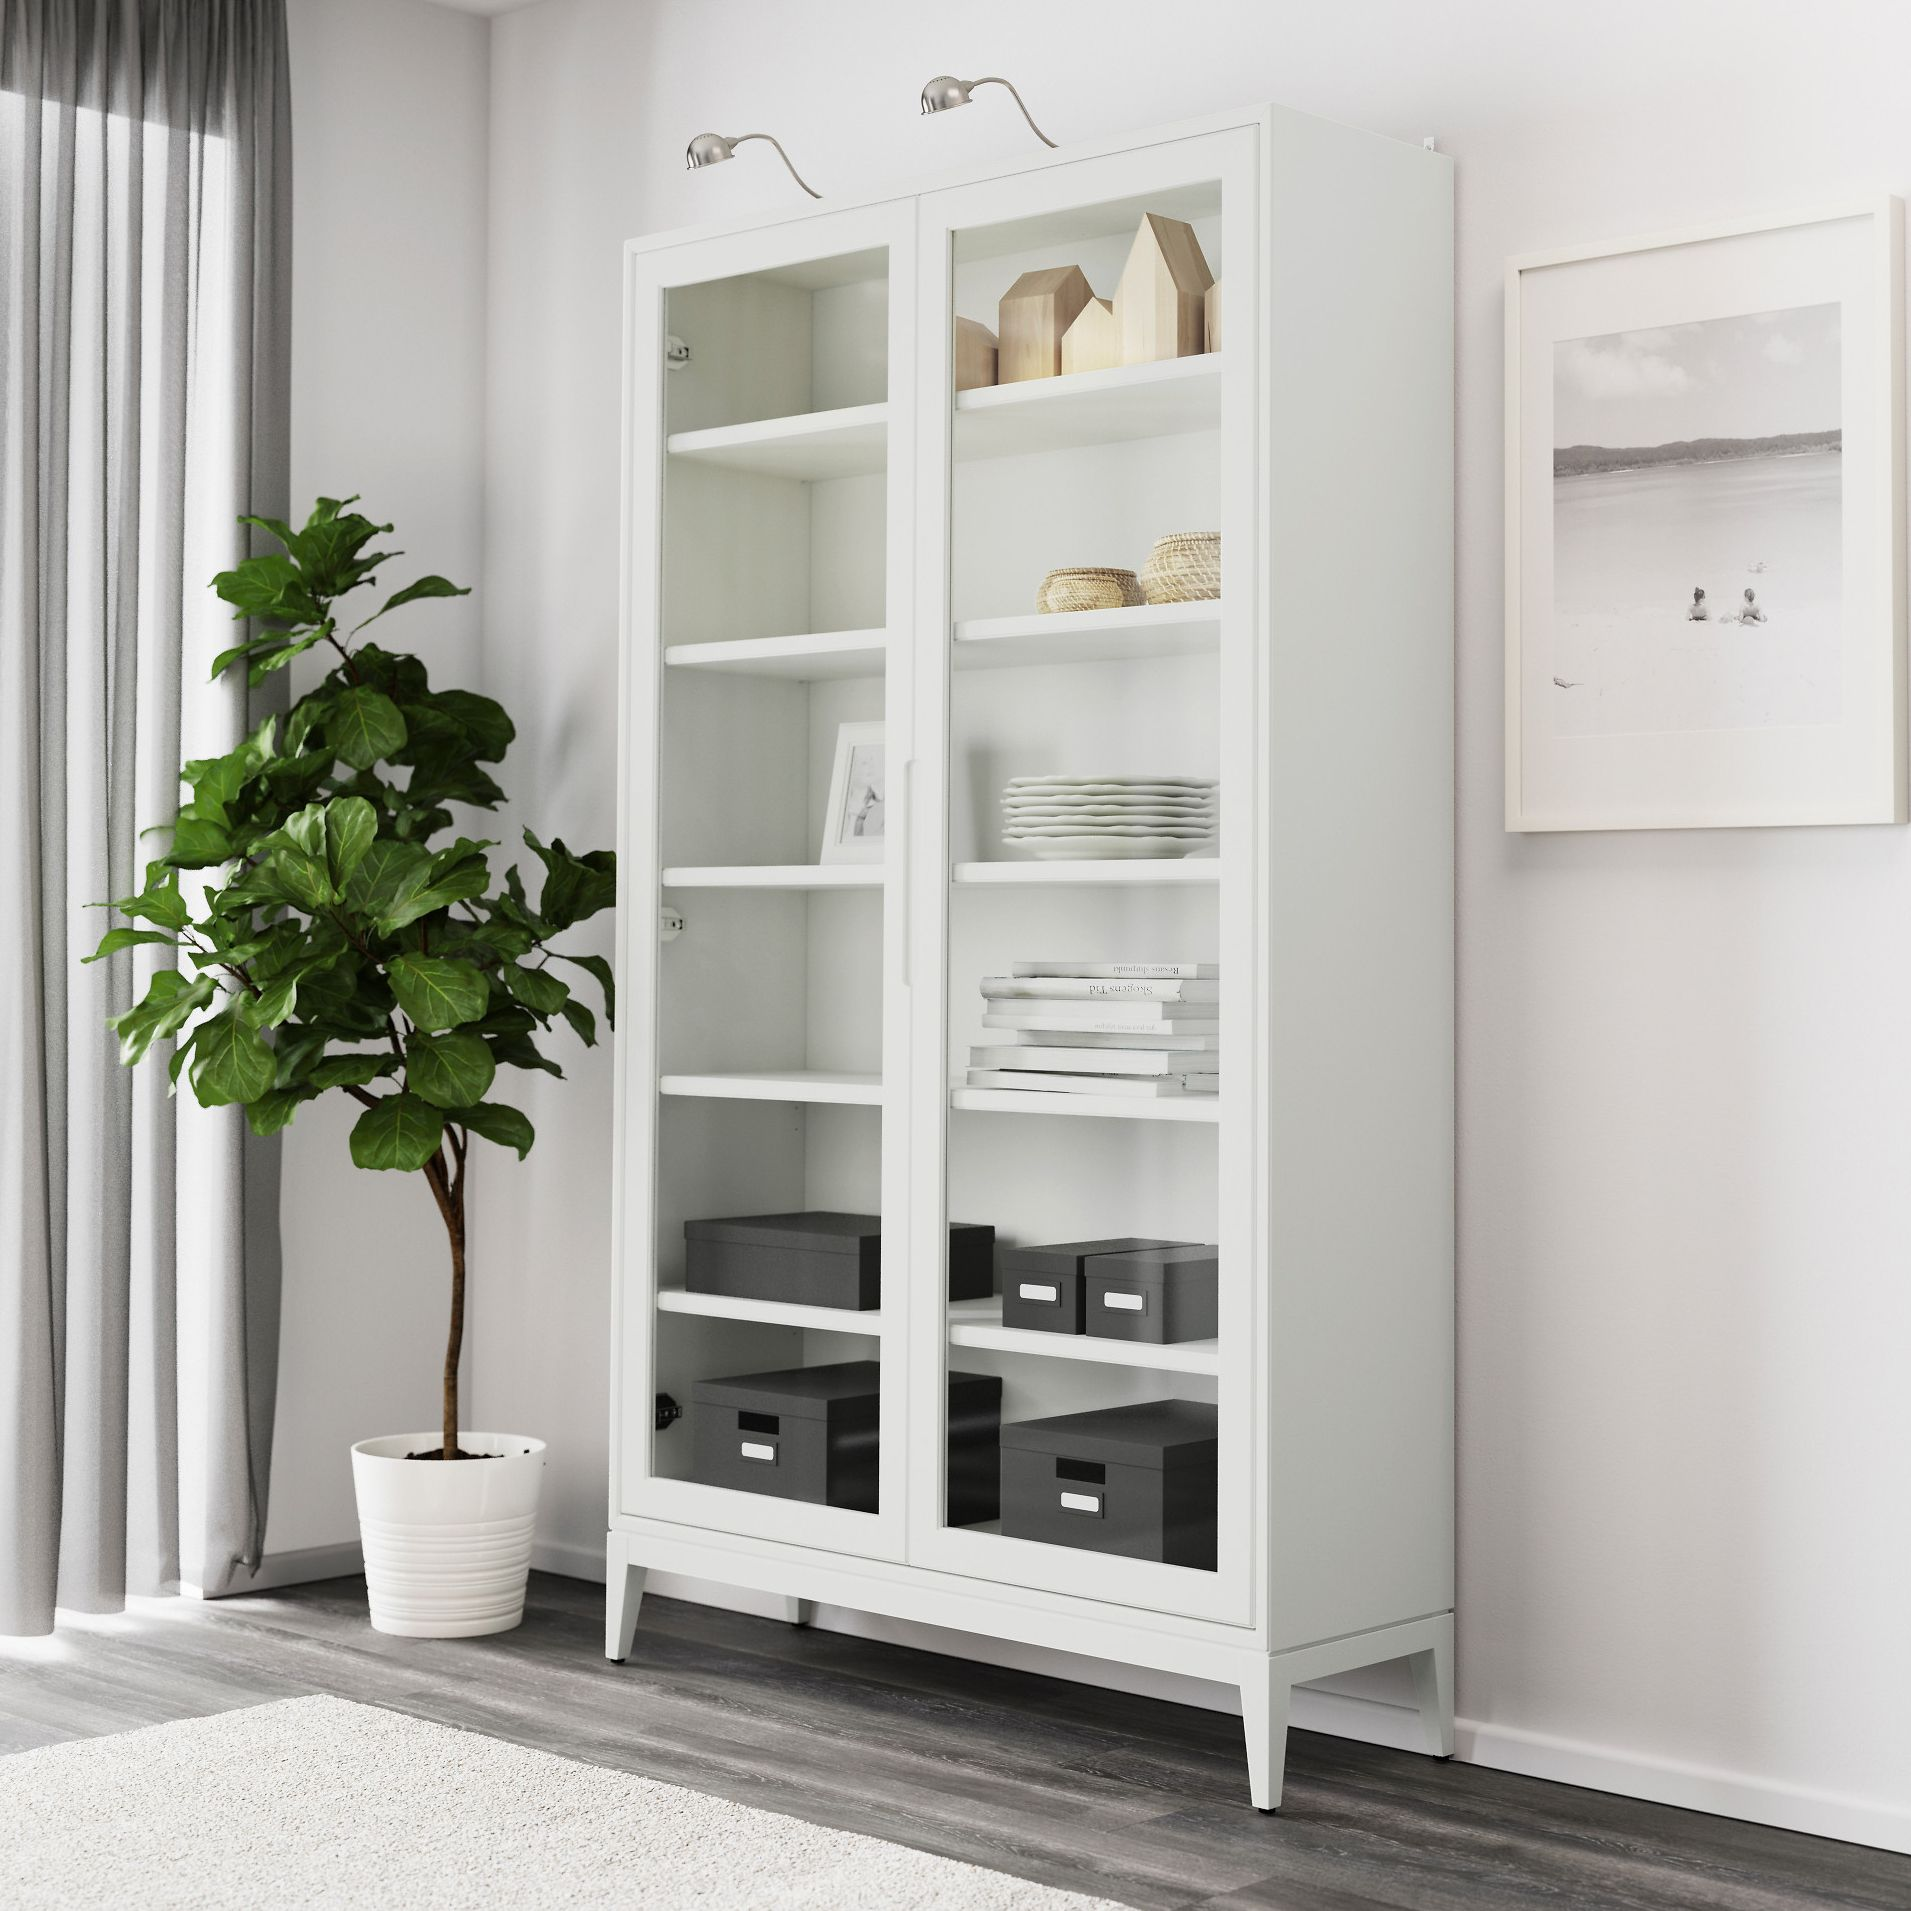 Eke Out More Space: Stylish Storage for Small Living Rooms | Living ...